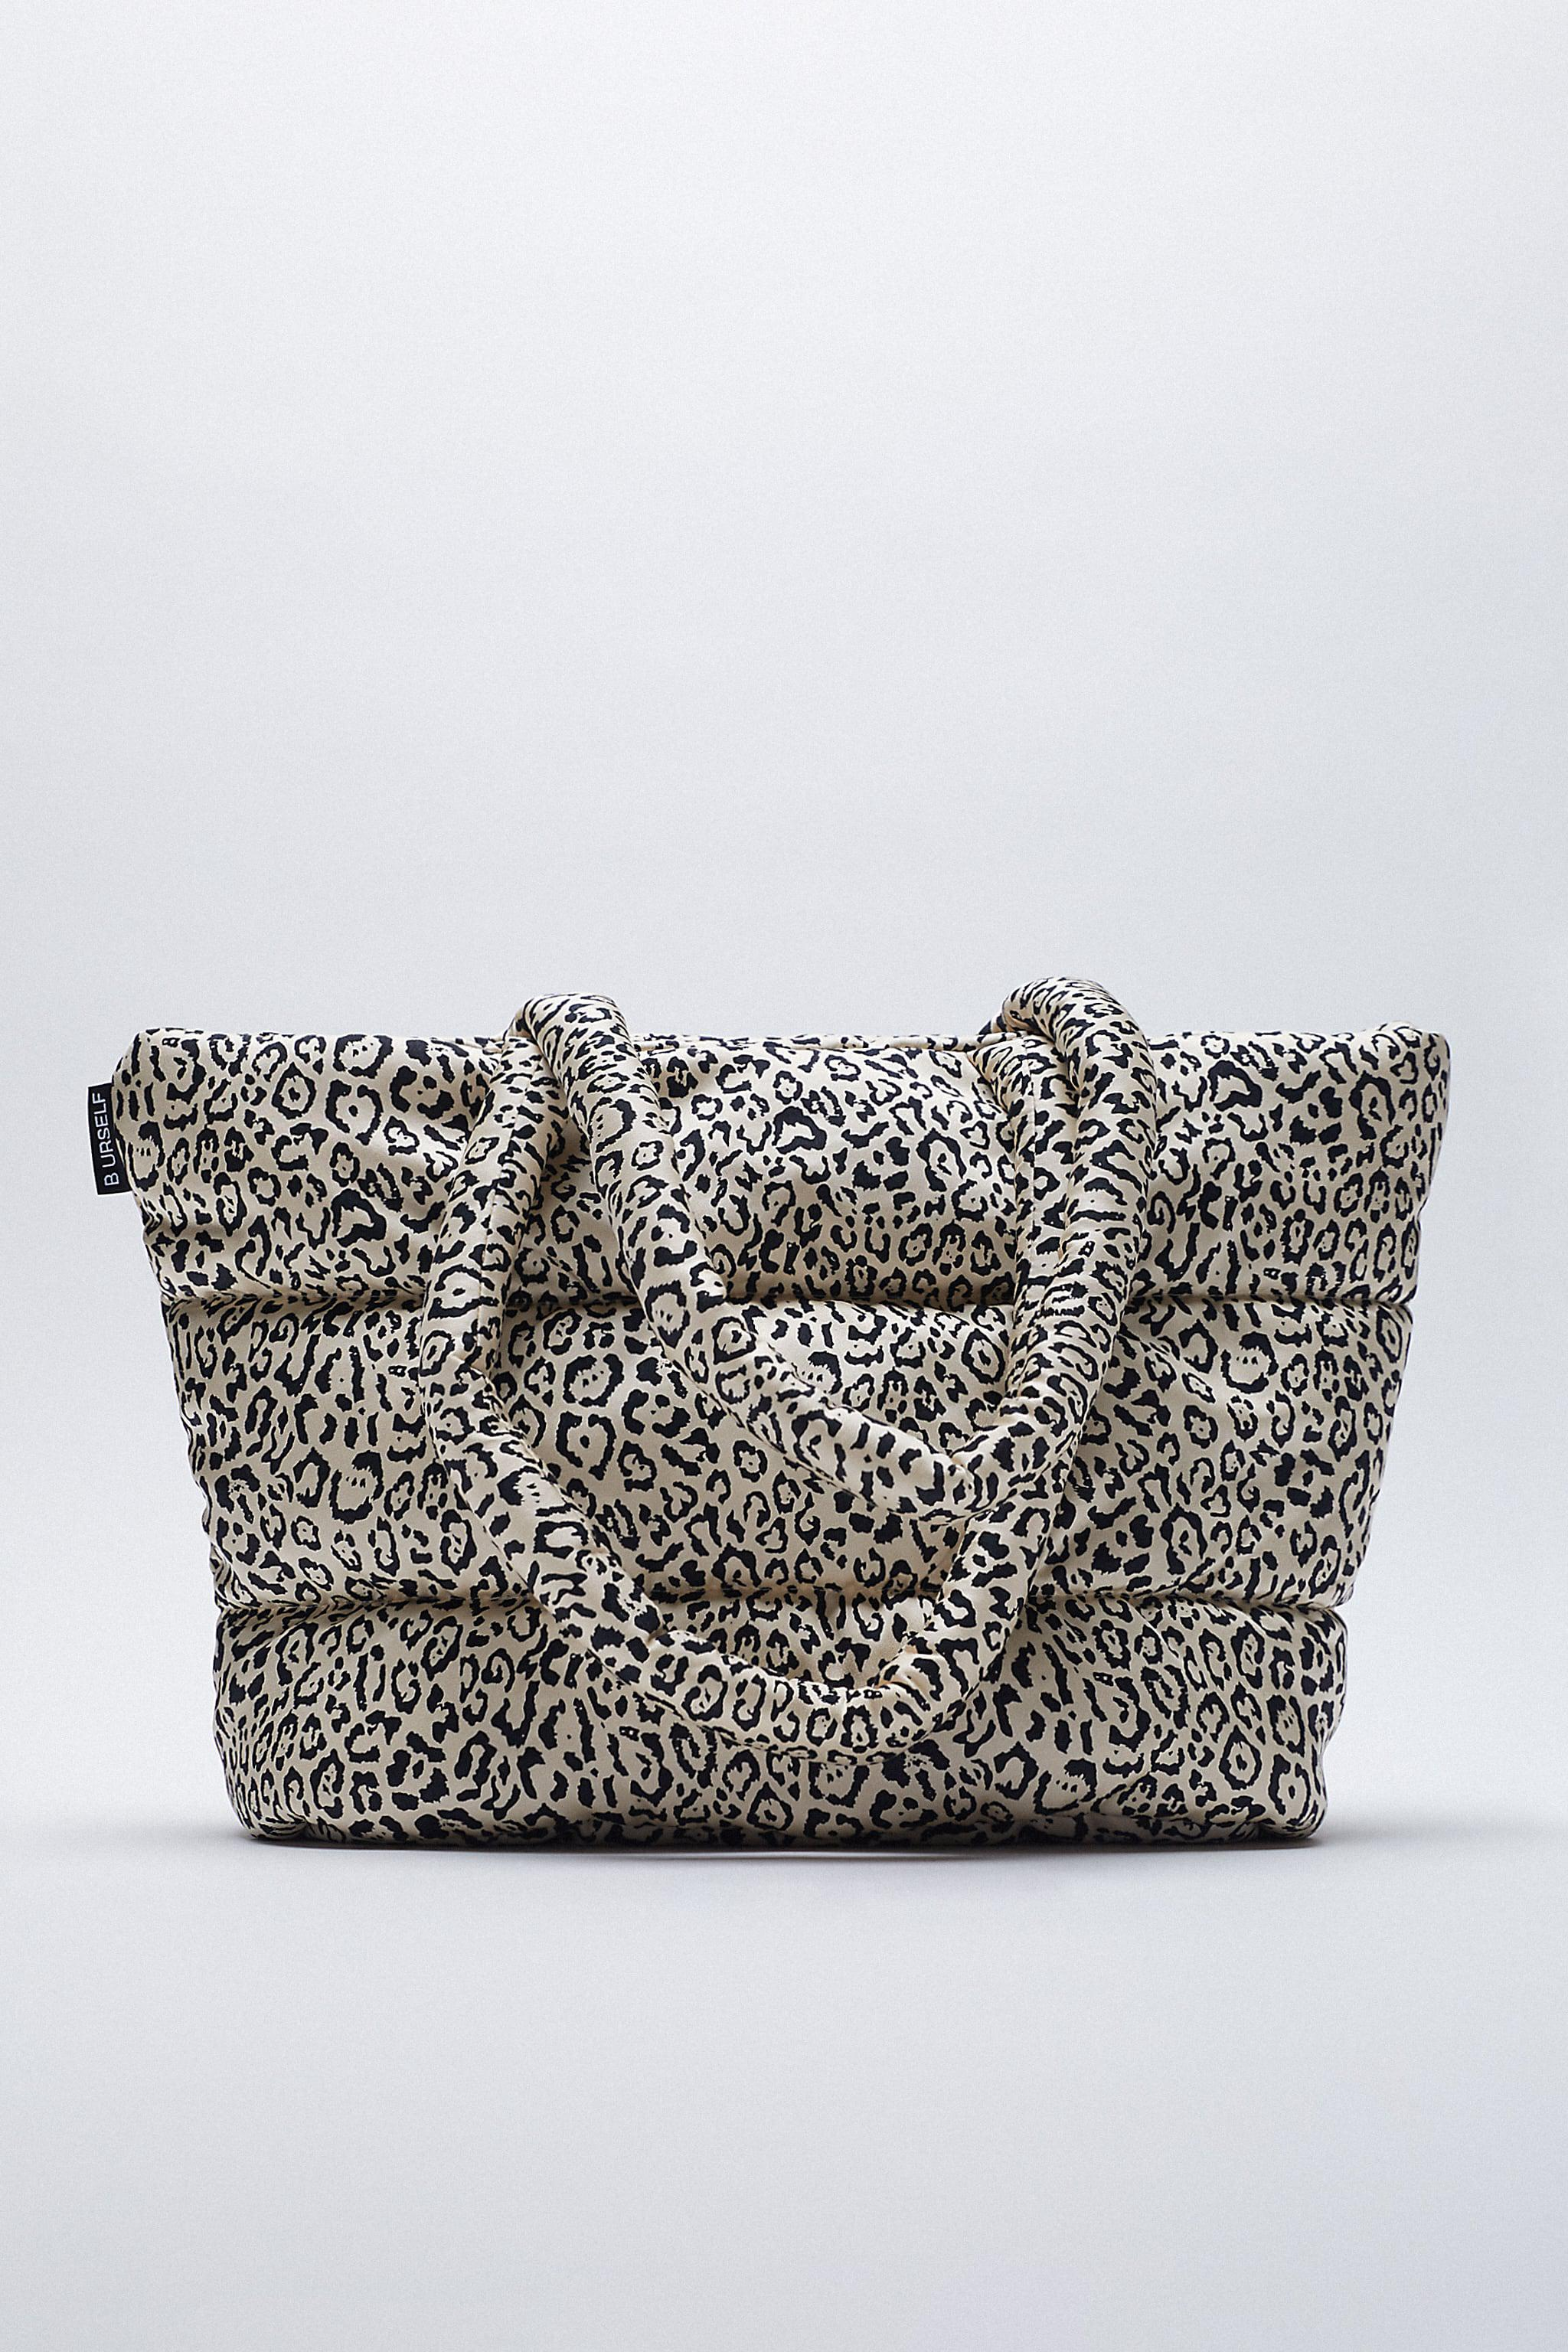 ANIMAL PRINT QUILTED TOTE BAG